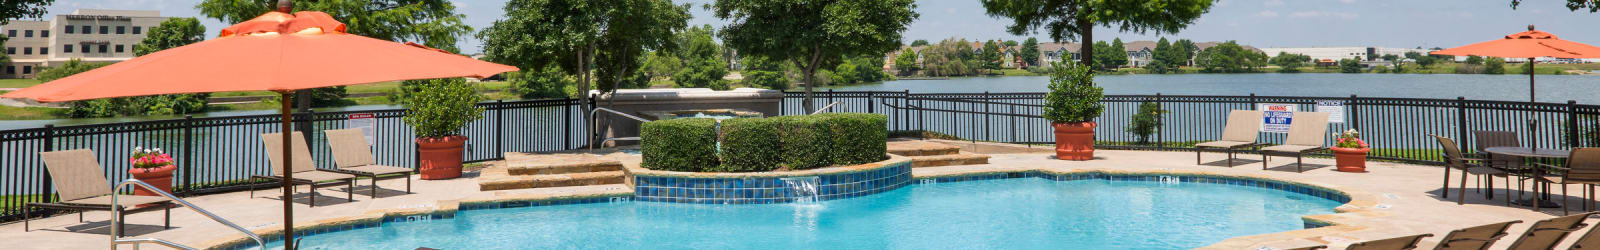 Contact us at Crescent Cove at Lakepointe in Lewisville, Texas